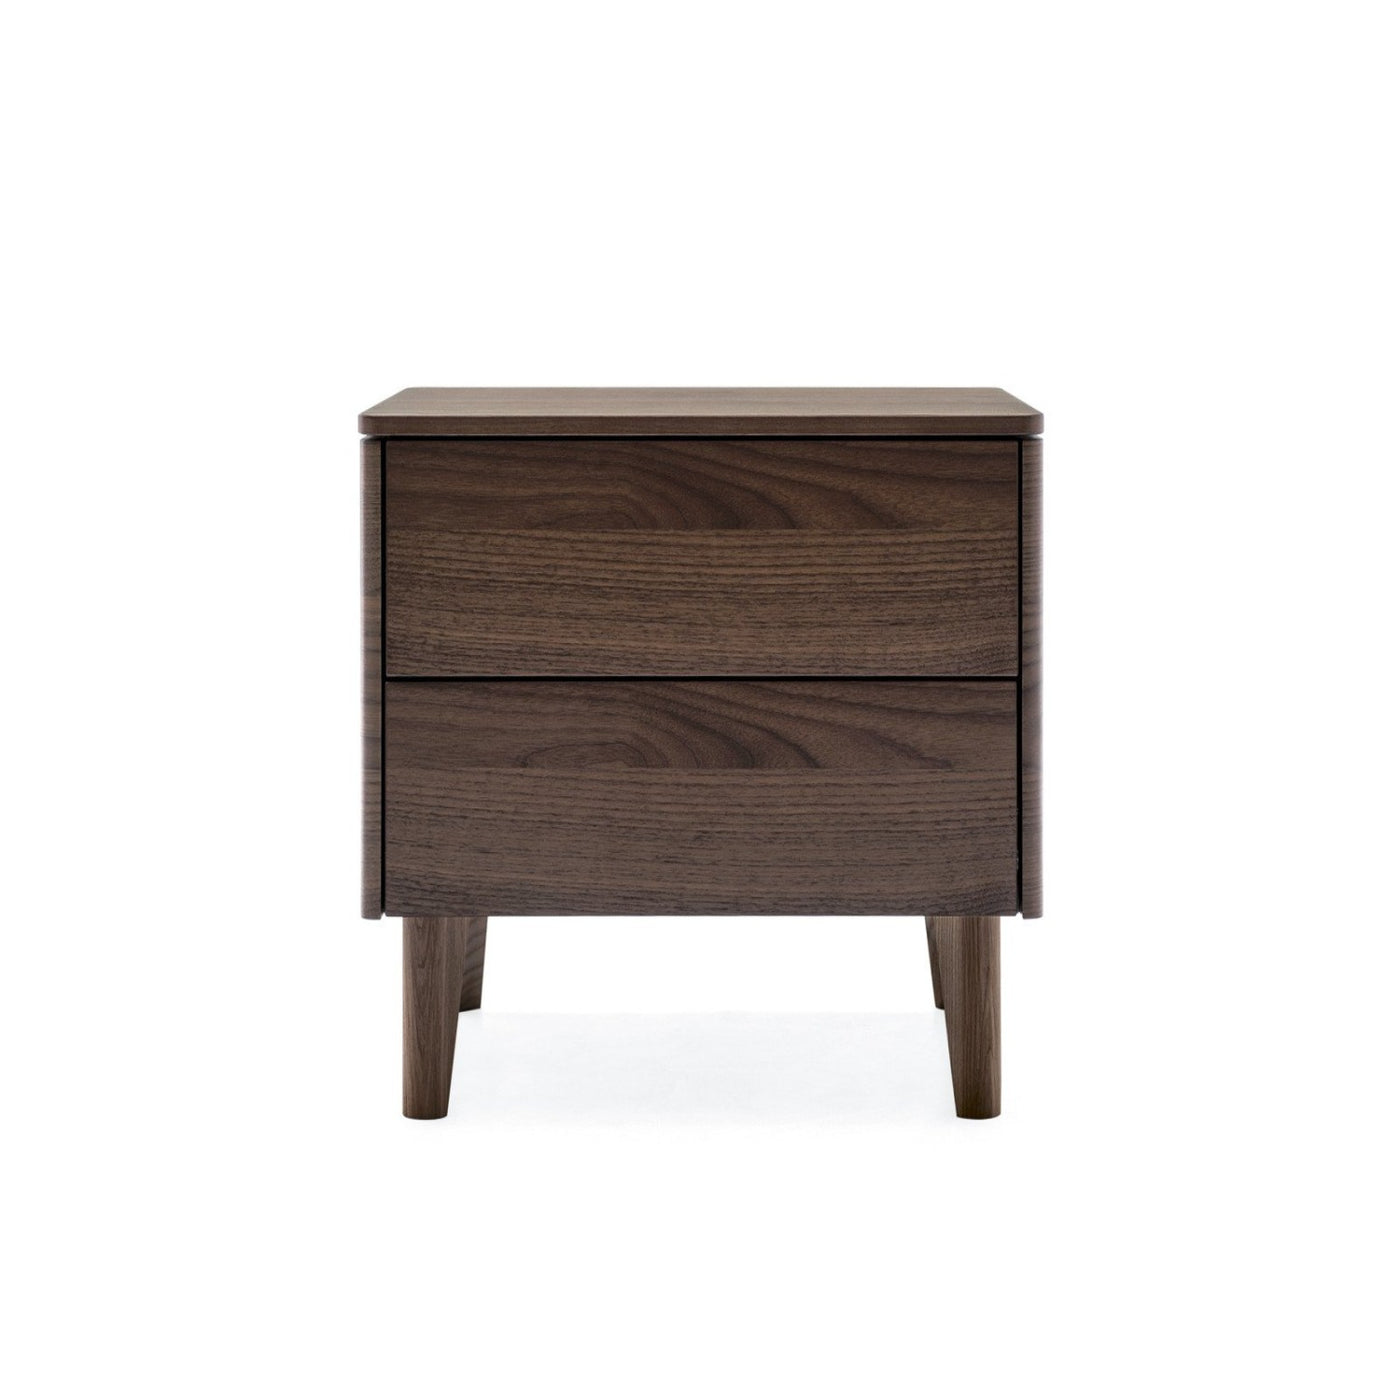 Bowery Night Stand Five Elements Furniture